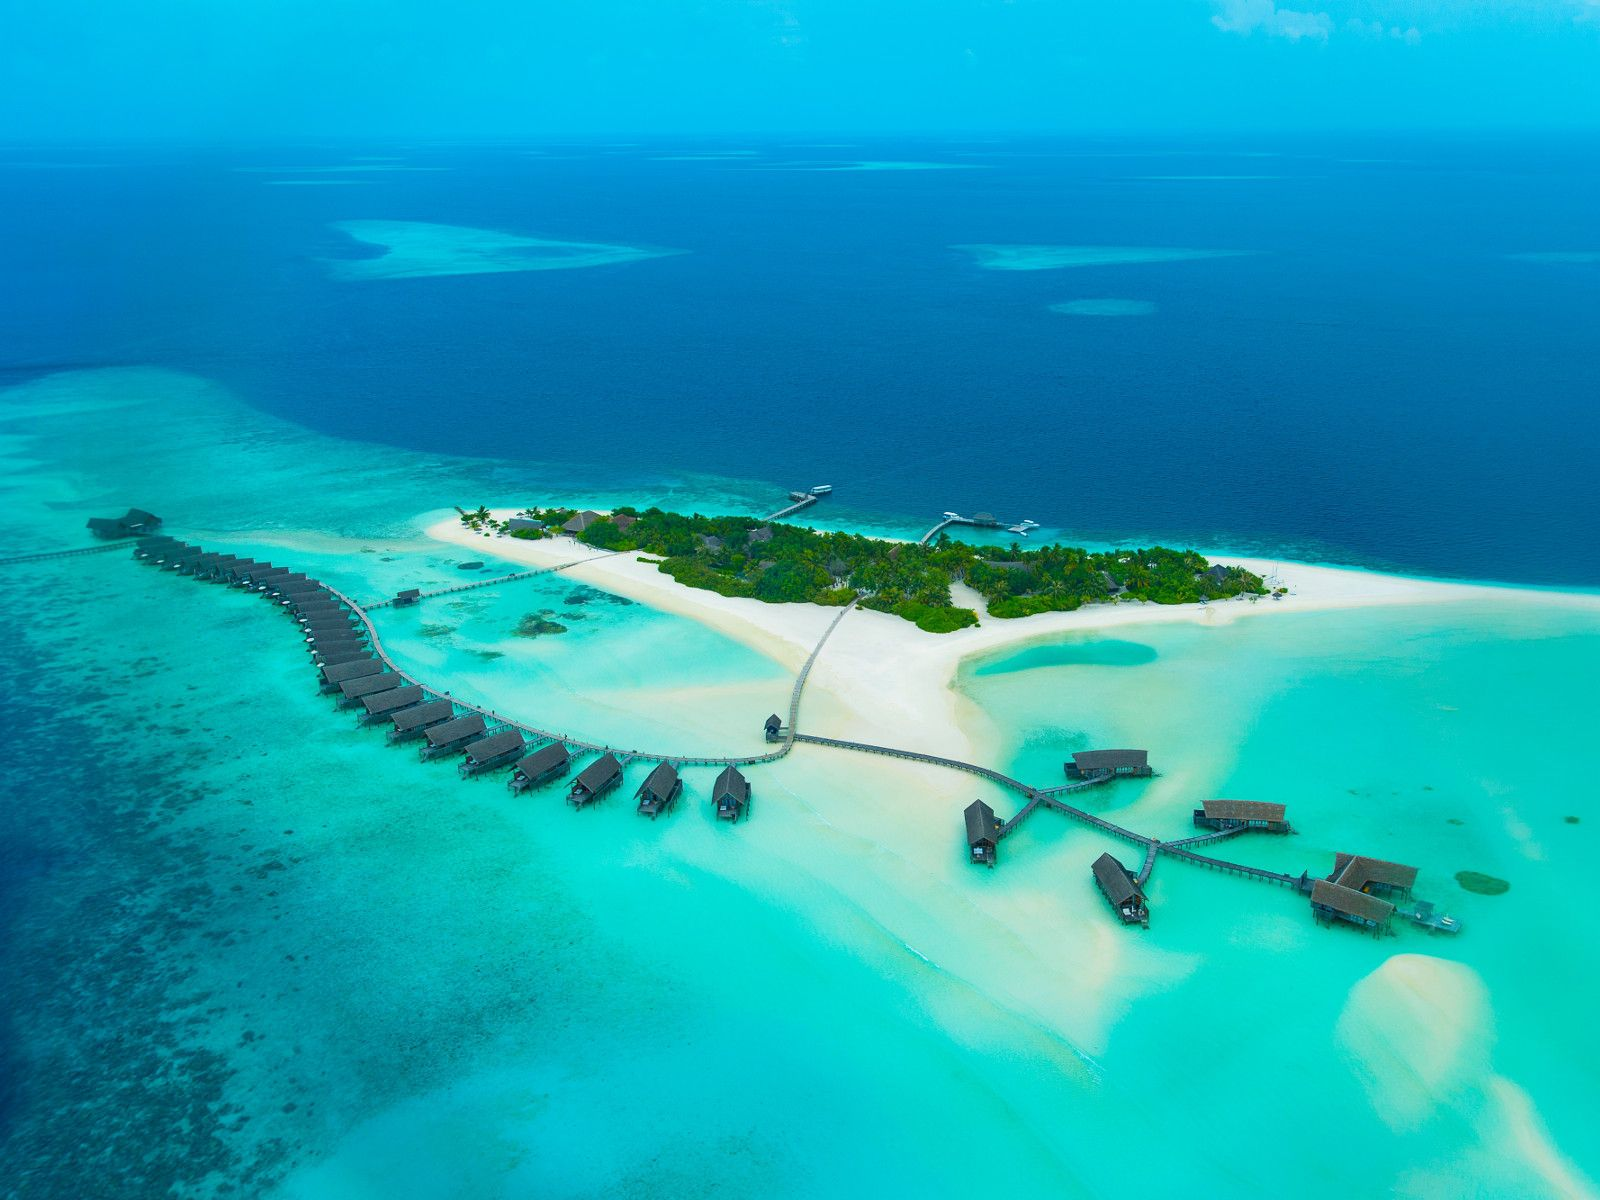 cocoa-island-is-one-of-the-most-unique-maldives-resorts-ideal-for-honeymooners